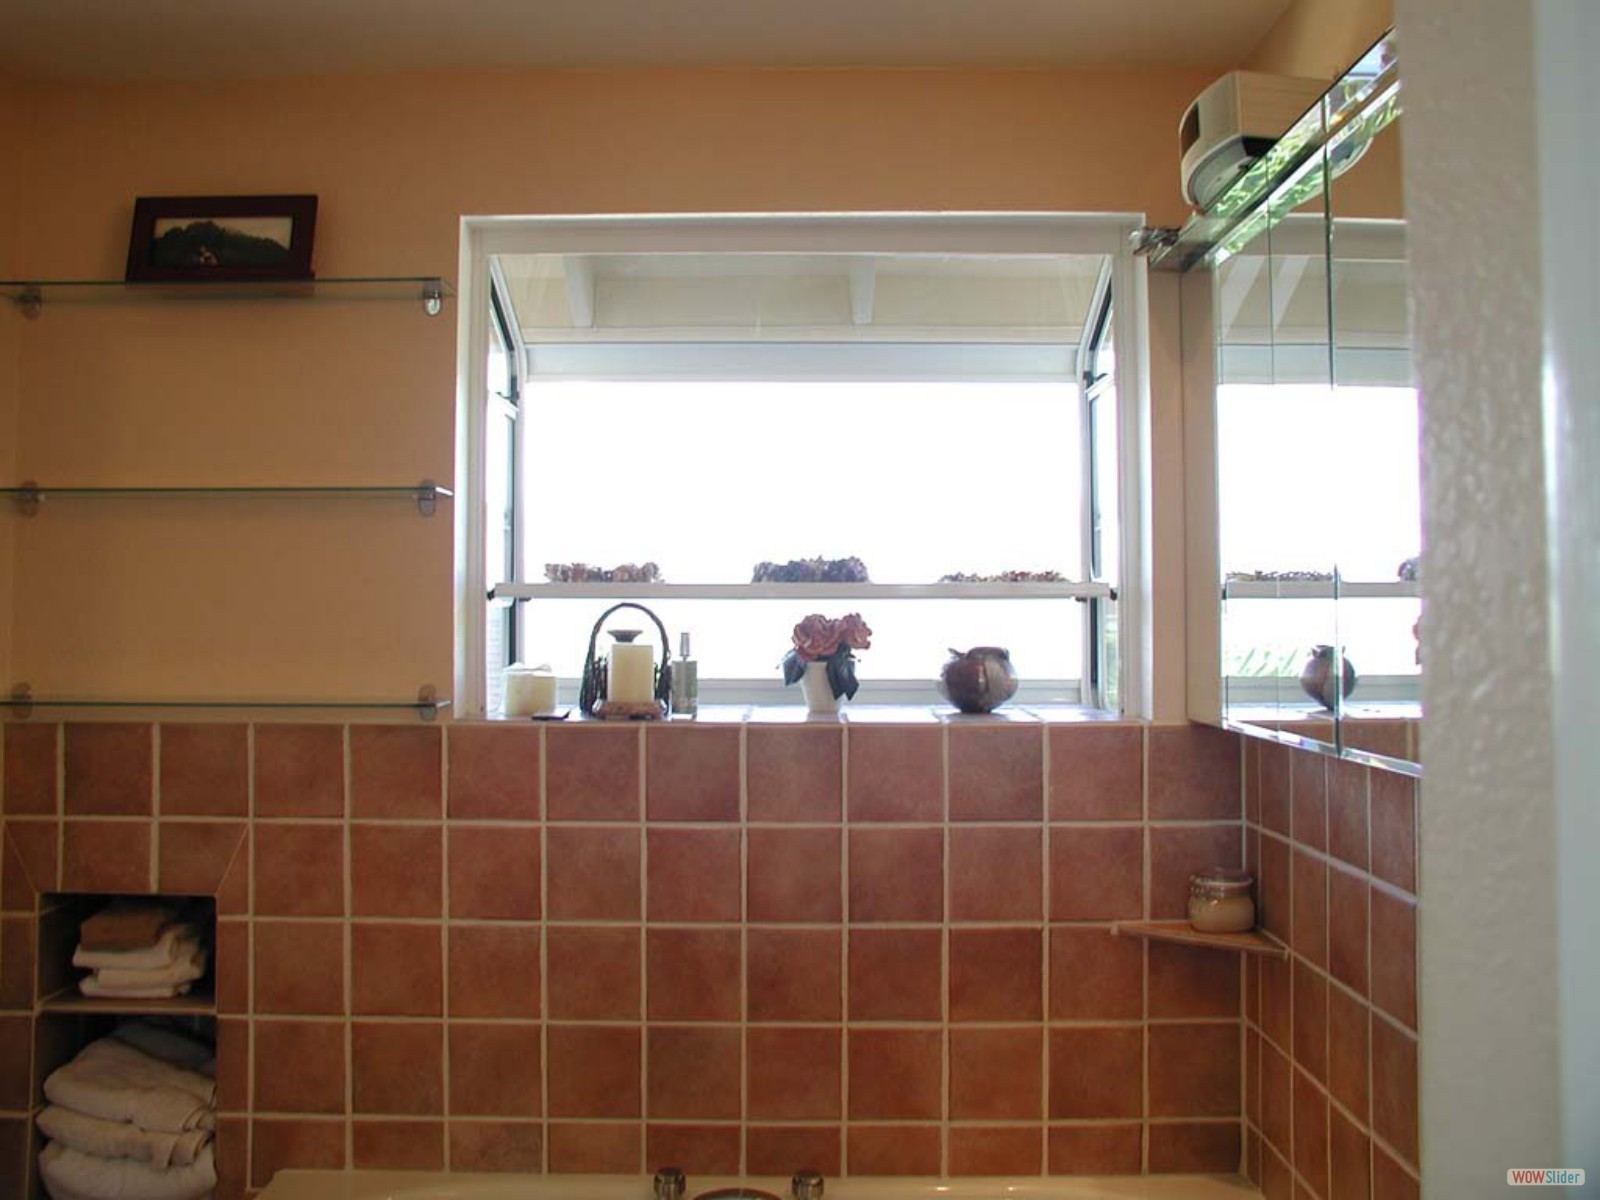 BATHROOM REMODEL - Window